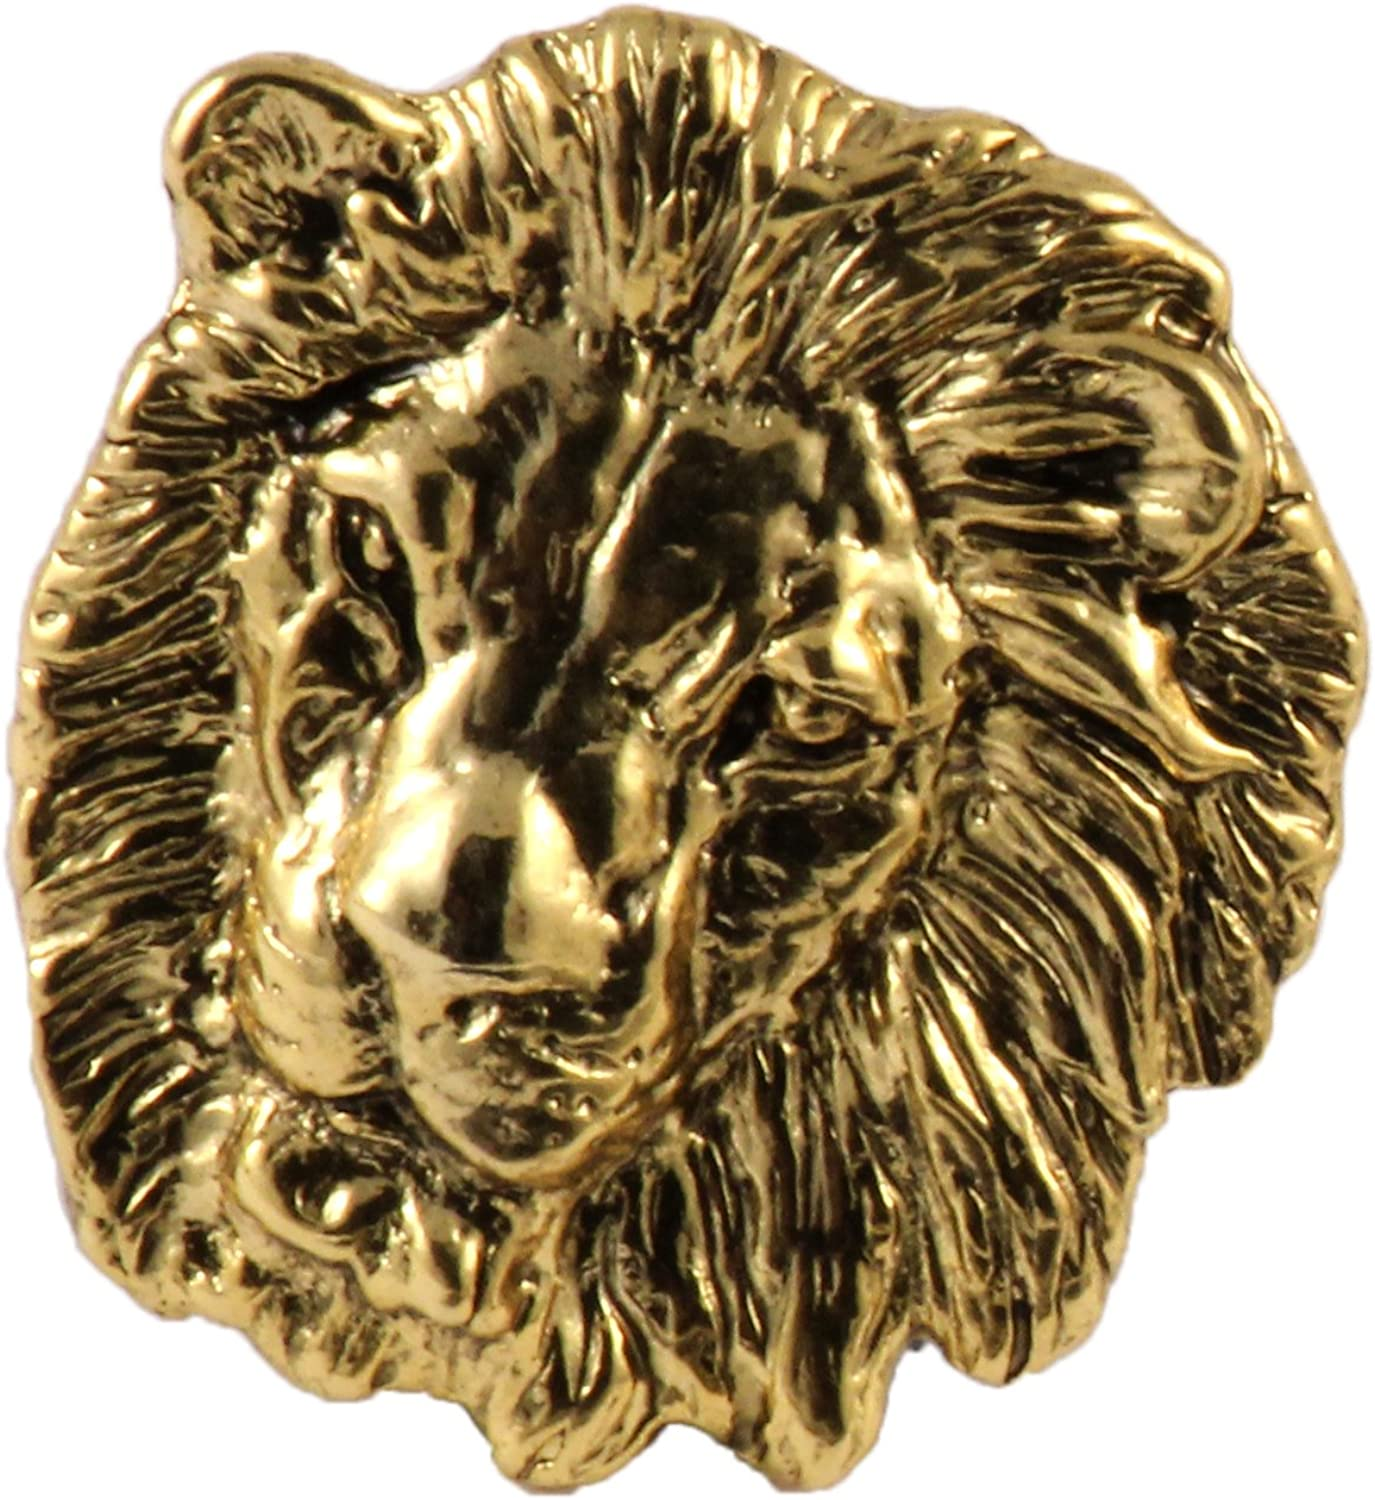 Handcrafted Big Cat Brooch and Lapel Pins - Cheetah, Leopard, Lion, Tiger, Bobcat, Lynx, Mountain Lion, Cougar - Pewter, Copper, Gold, Painted - Made in USA